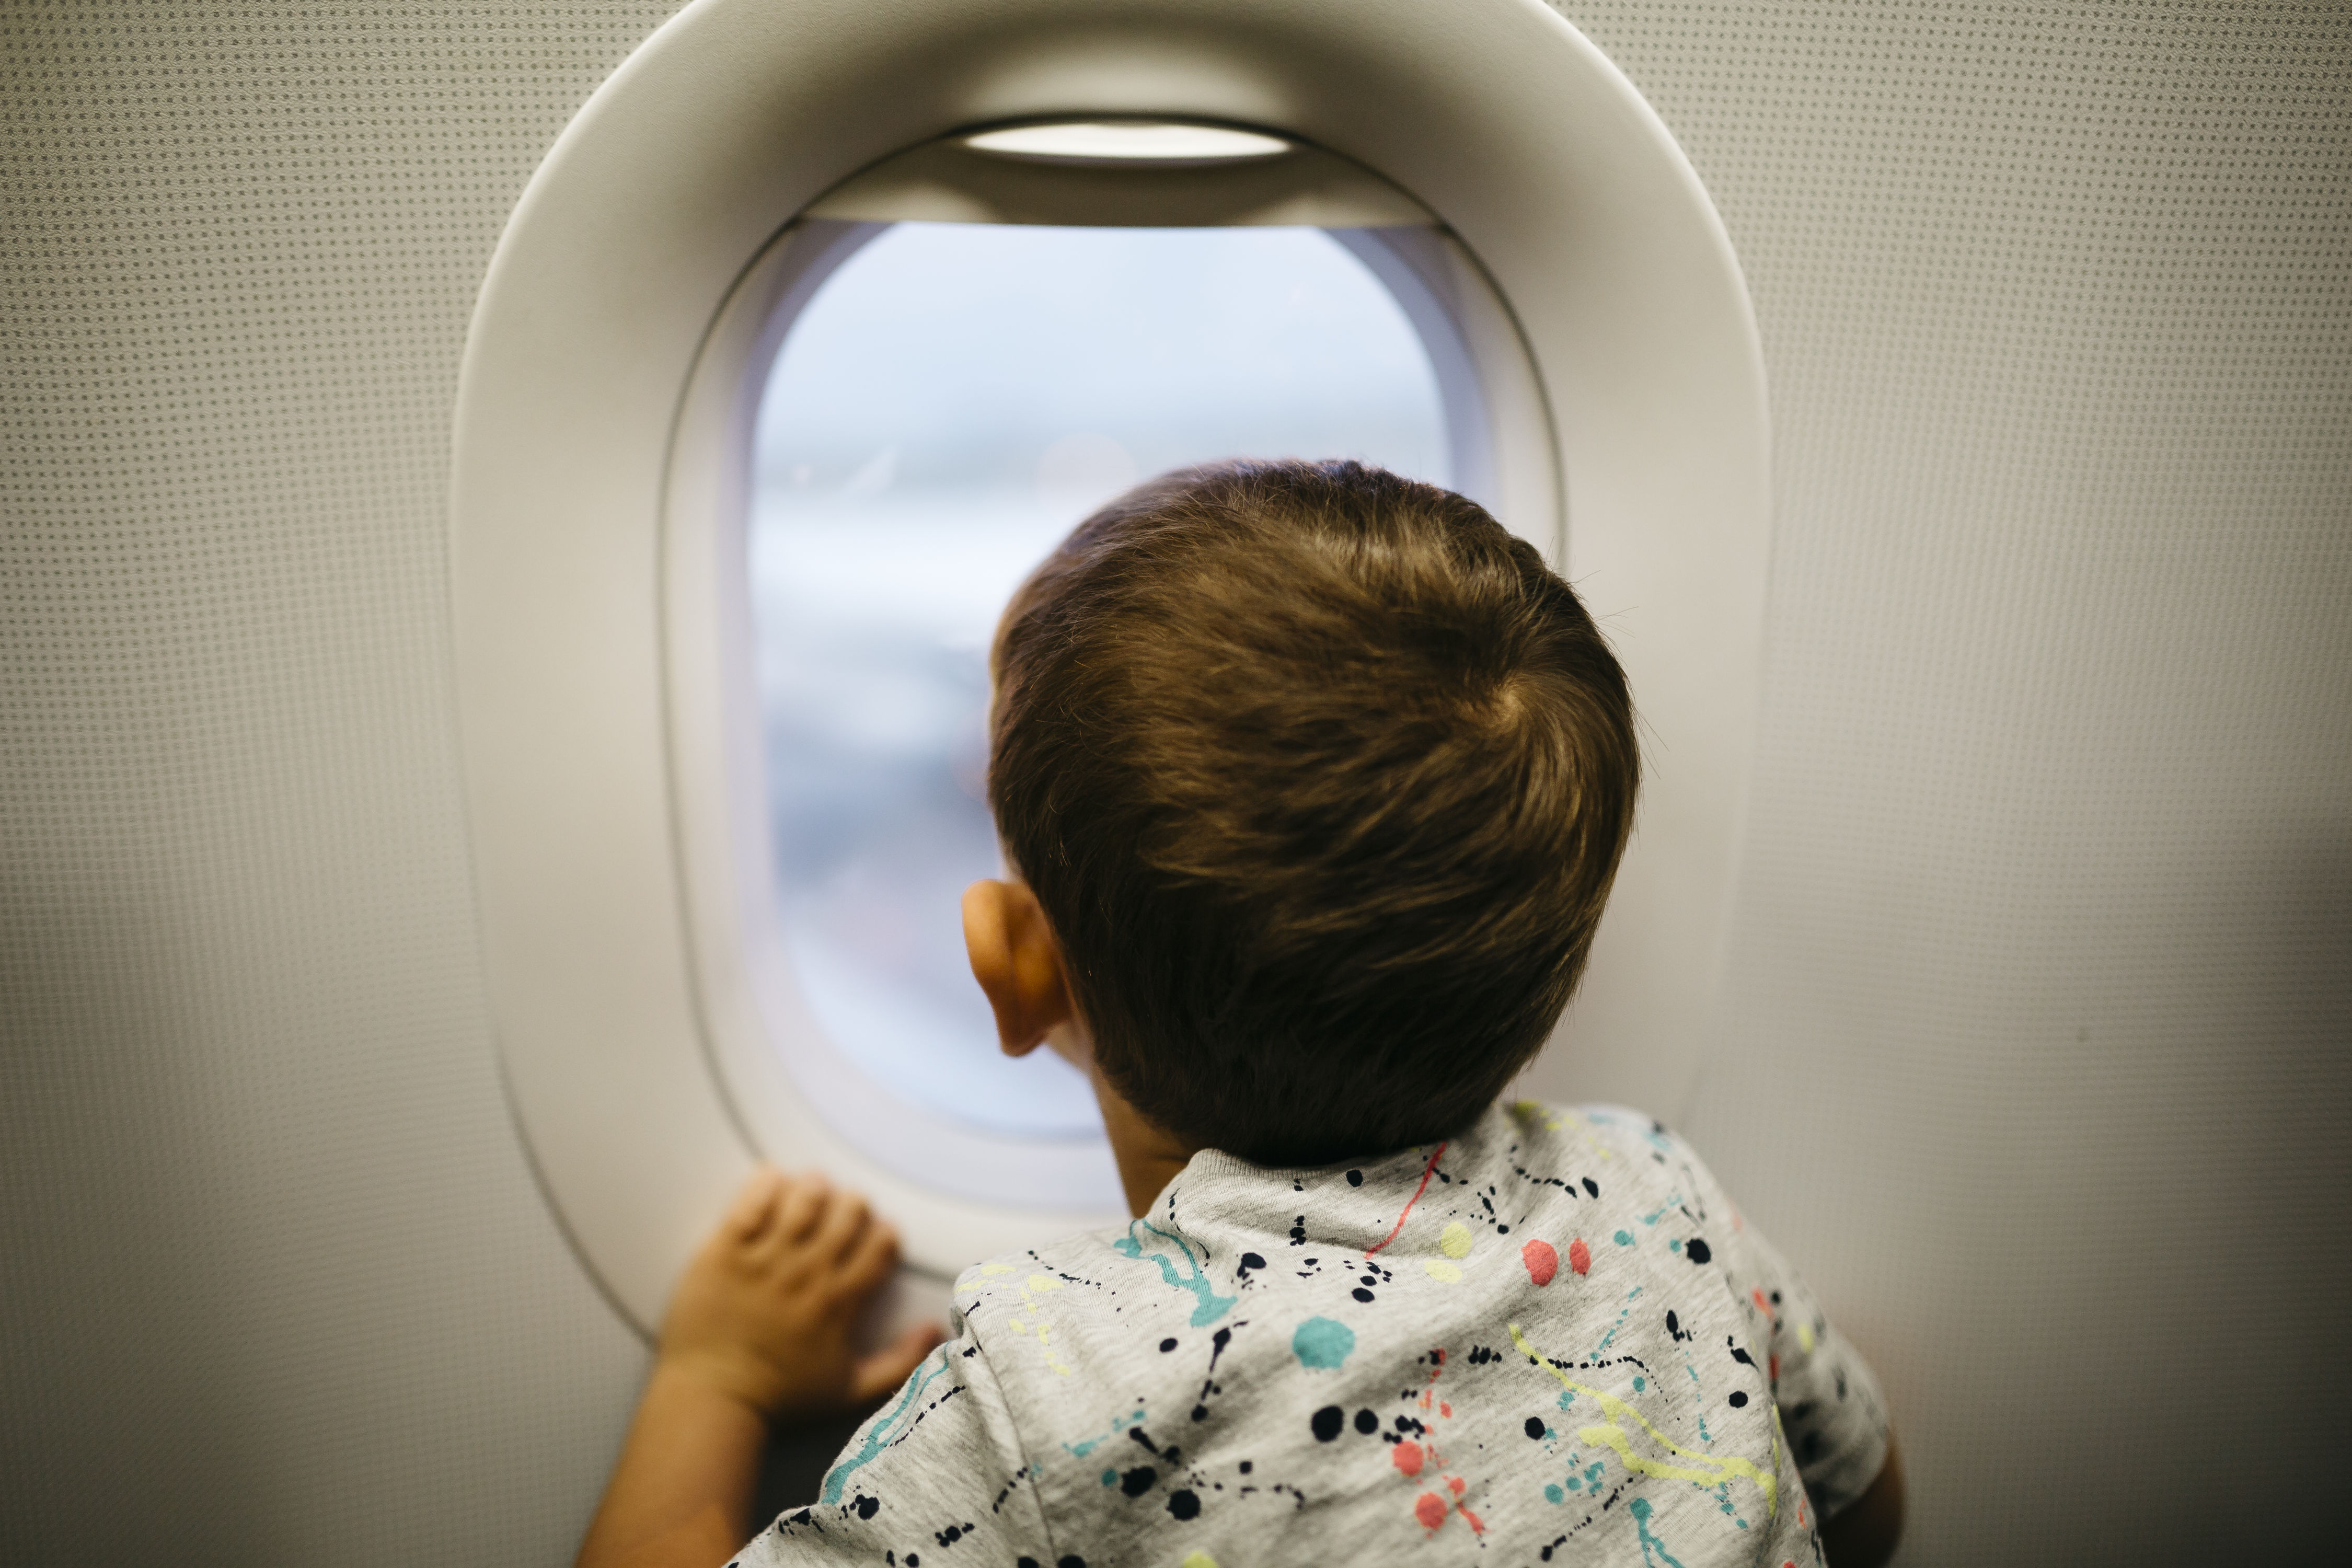 Check Out How This Adorable Toddler Made His Whole Flight's Day